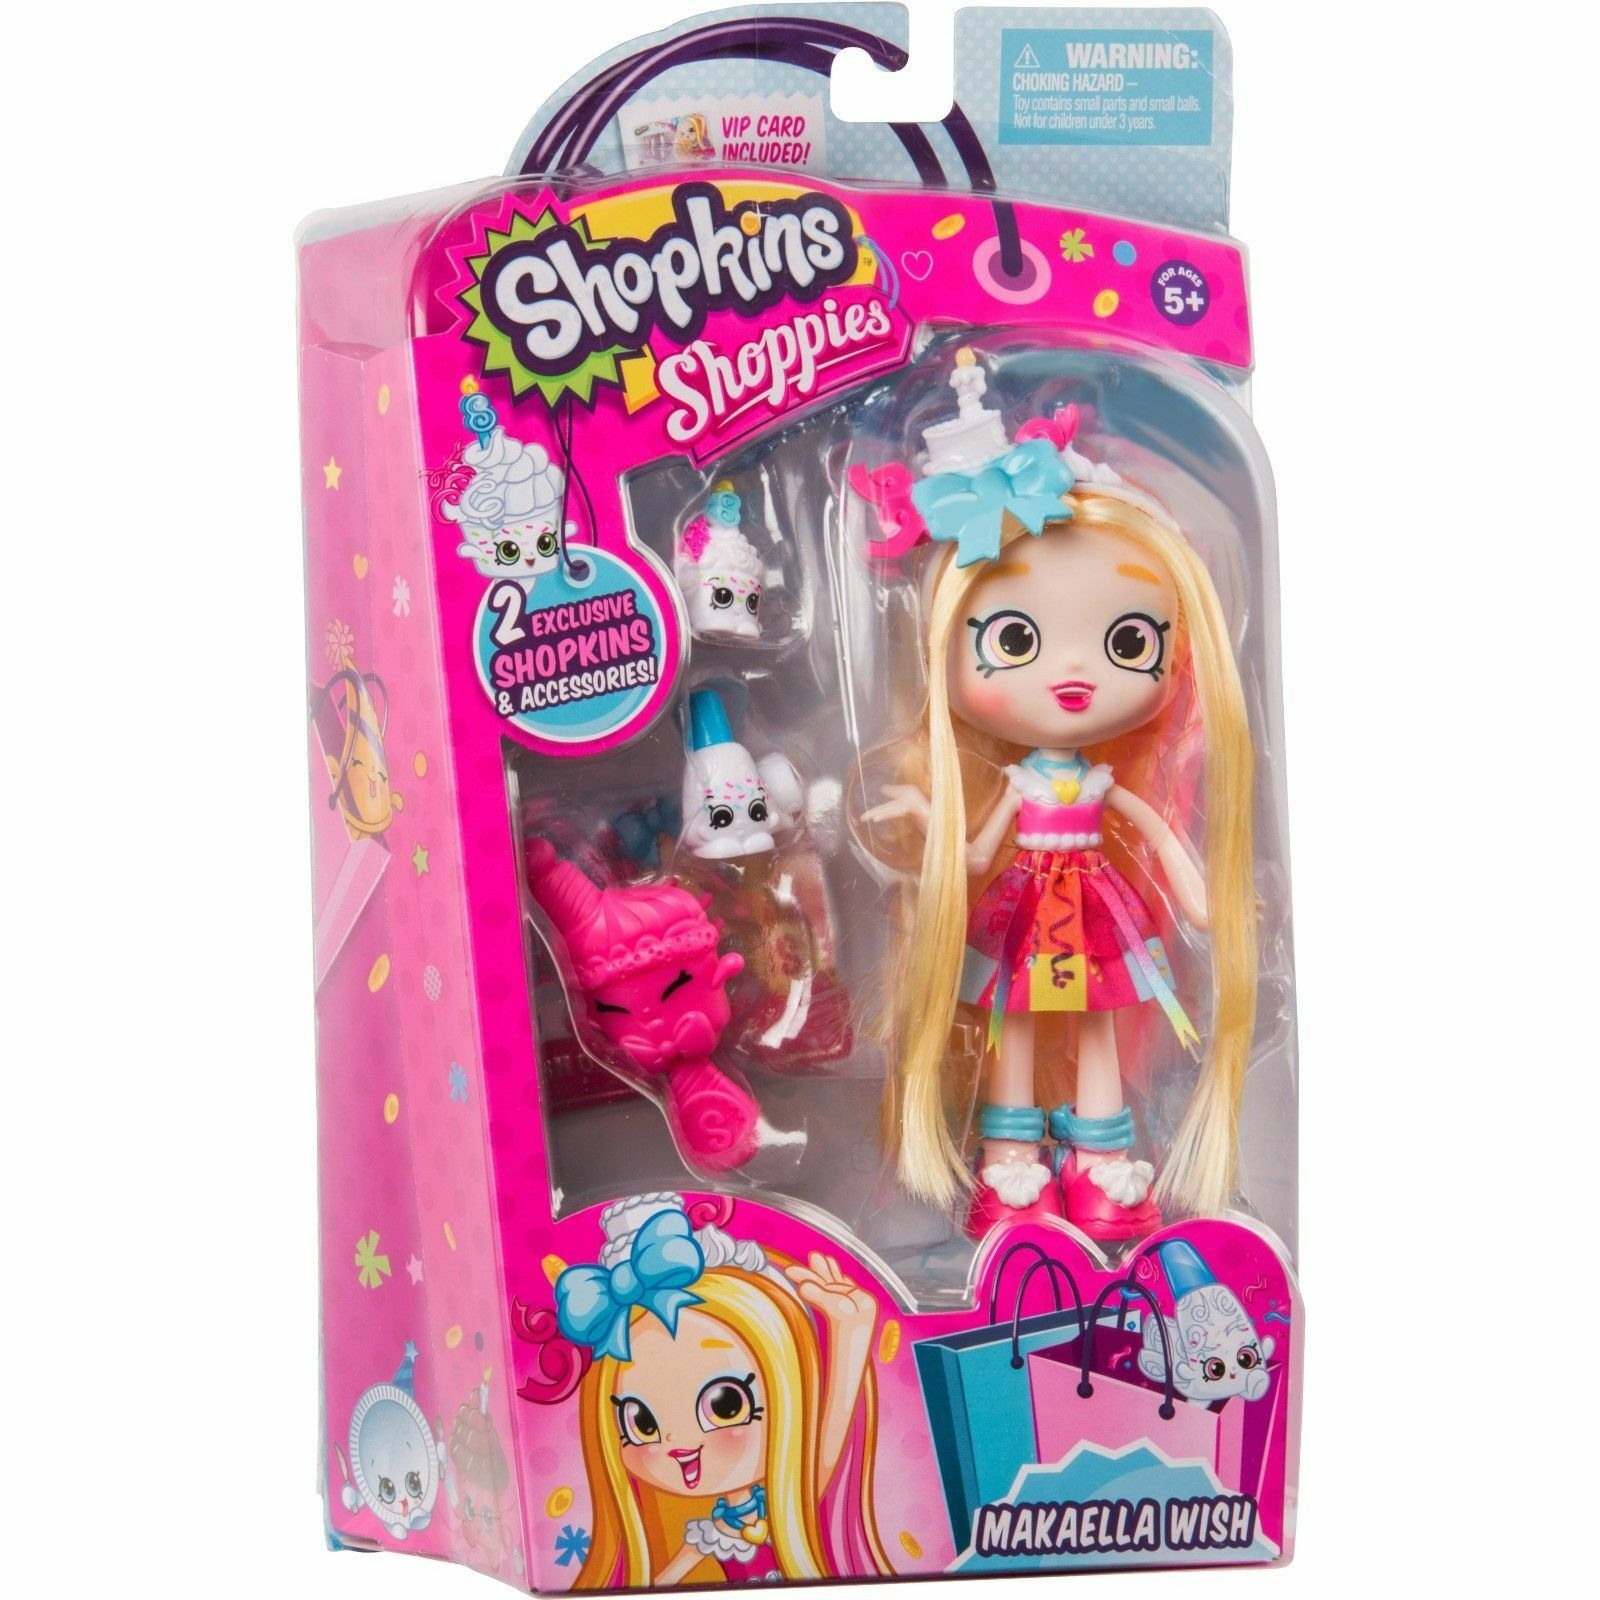 Shopkins Girls' Day Out    Shoppies Doll  Makaella Wish w  2 Exclusive Shopkins af1a90